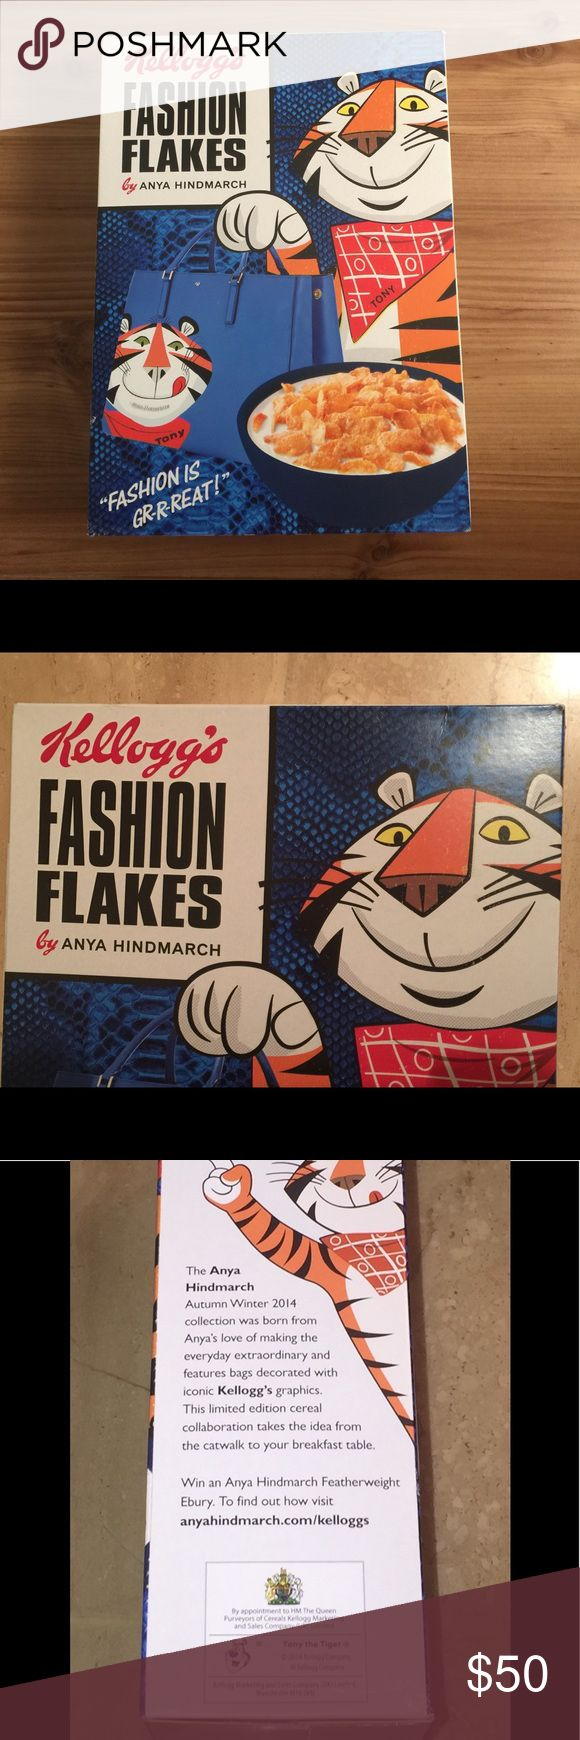 Anya Hindmarch Fashion Flakes Kelloggs Tony Tiger This super rare box of Anya Hindmarch Fashion Flakes to coincide with the release with the Tony The Tiger handbag!  This is full box.  Notes on condition.  Box is in very good condition.  There is creasing on the left and right bottom sides of the  box.  The box picture is the same on the front and back.  See pictures.   This is a 750 gram box.  This box is for collectable purposes only, and is past the expiration date.  It is NOT recommended…